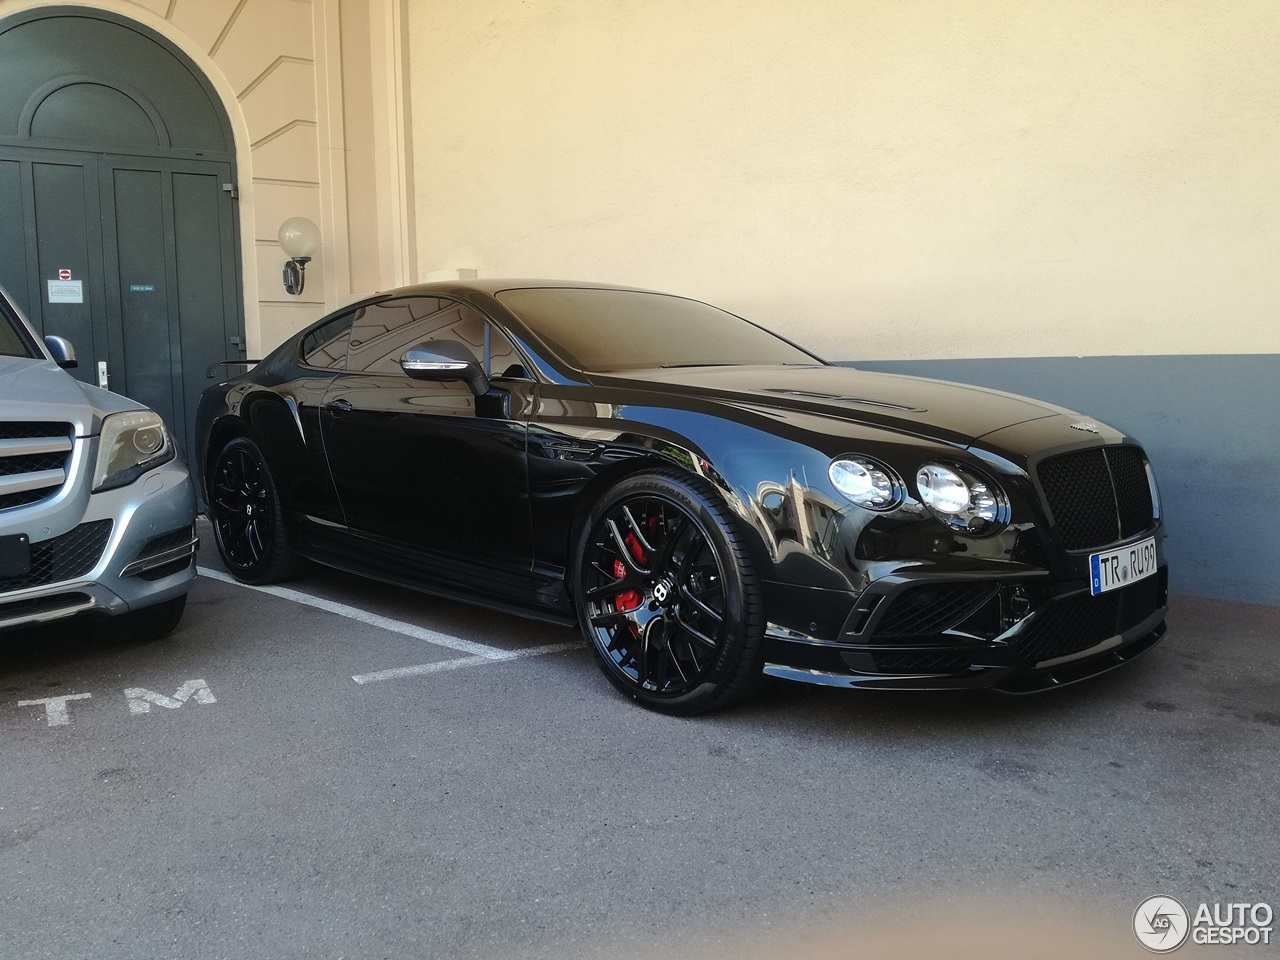 bentley continental gt black with 18 on 2018 Bentley Continental Prototype Drive Review additionally 2019 Audi Rs7 Test Mule First Spy Shots in addition New 2018 Bentley Bentayga Black Edition Awd Sport Utility Sjaac2zv4jc018783 also 2018 Bentley Continental Gt Is Predictably Irresistible In The Flesh 120377 as well Basketball Wallpaper Black Fon.